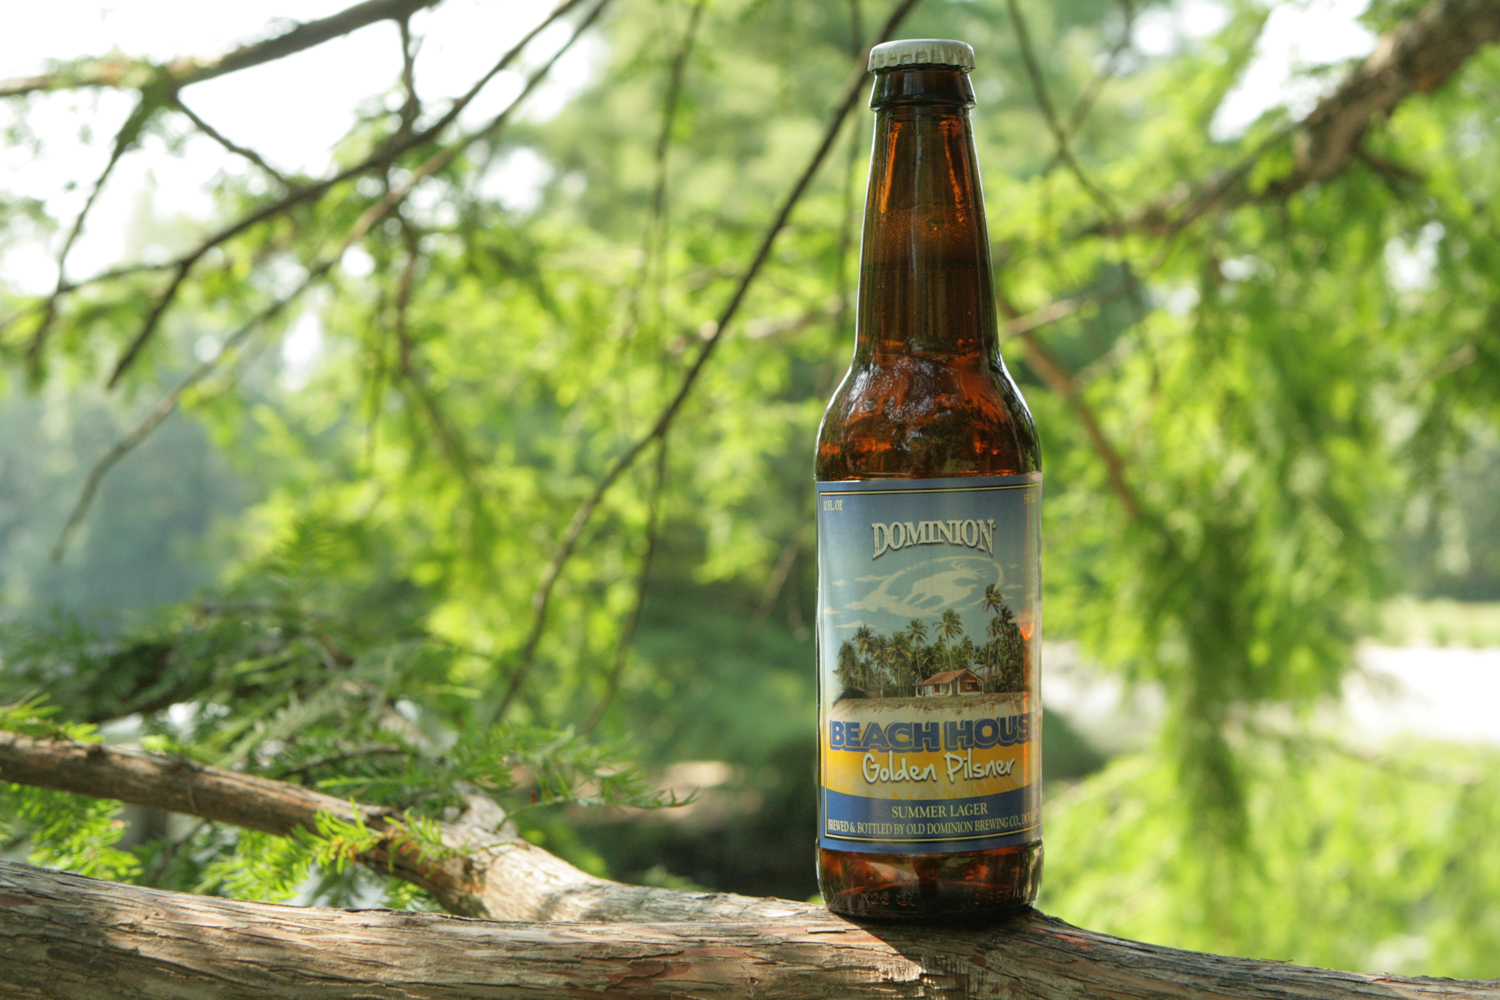 Enjoy a seasonal summer Beach House beer.